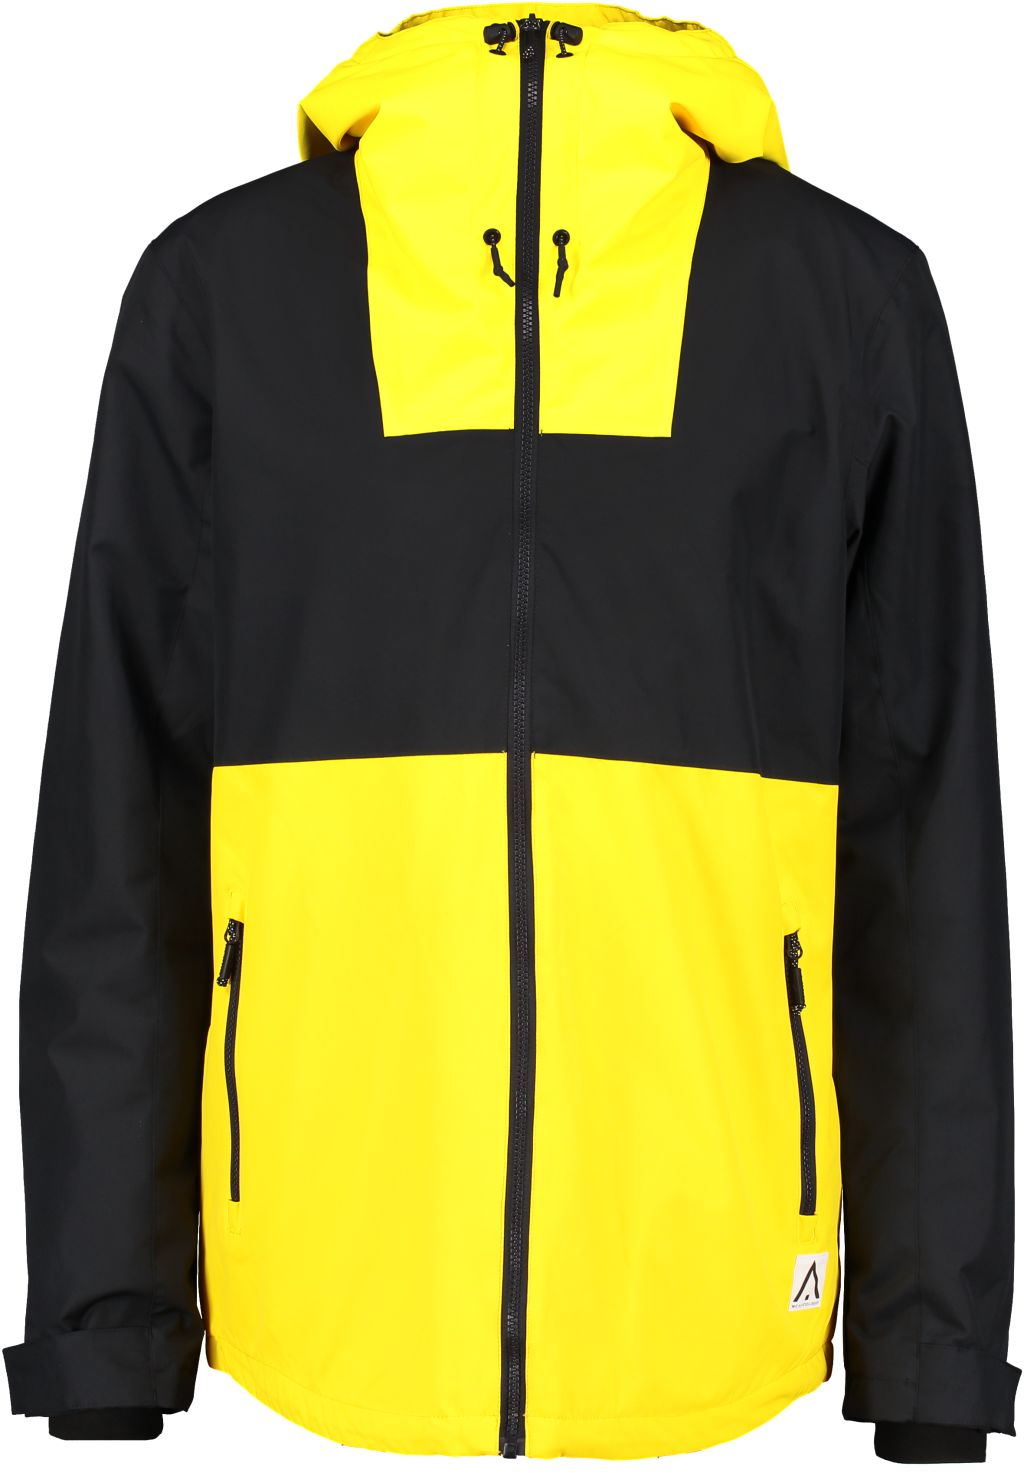 Wear Colour Block Jacket M